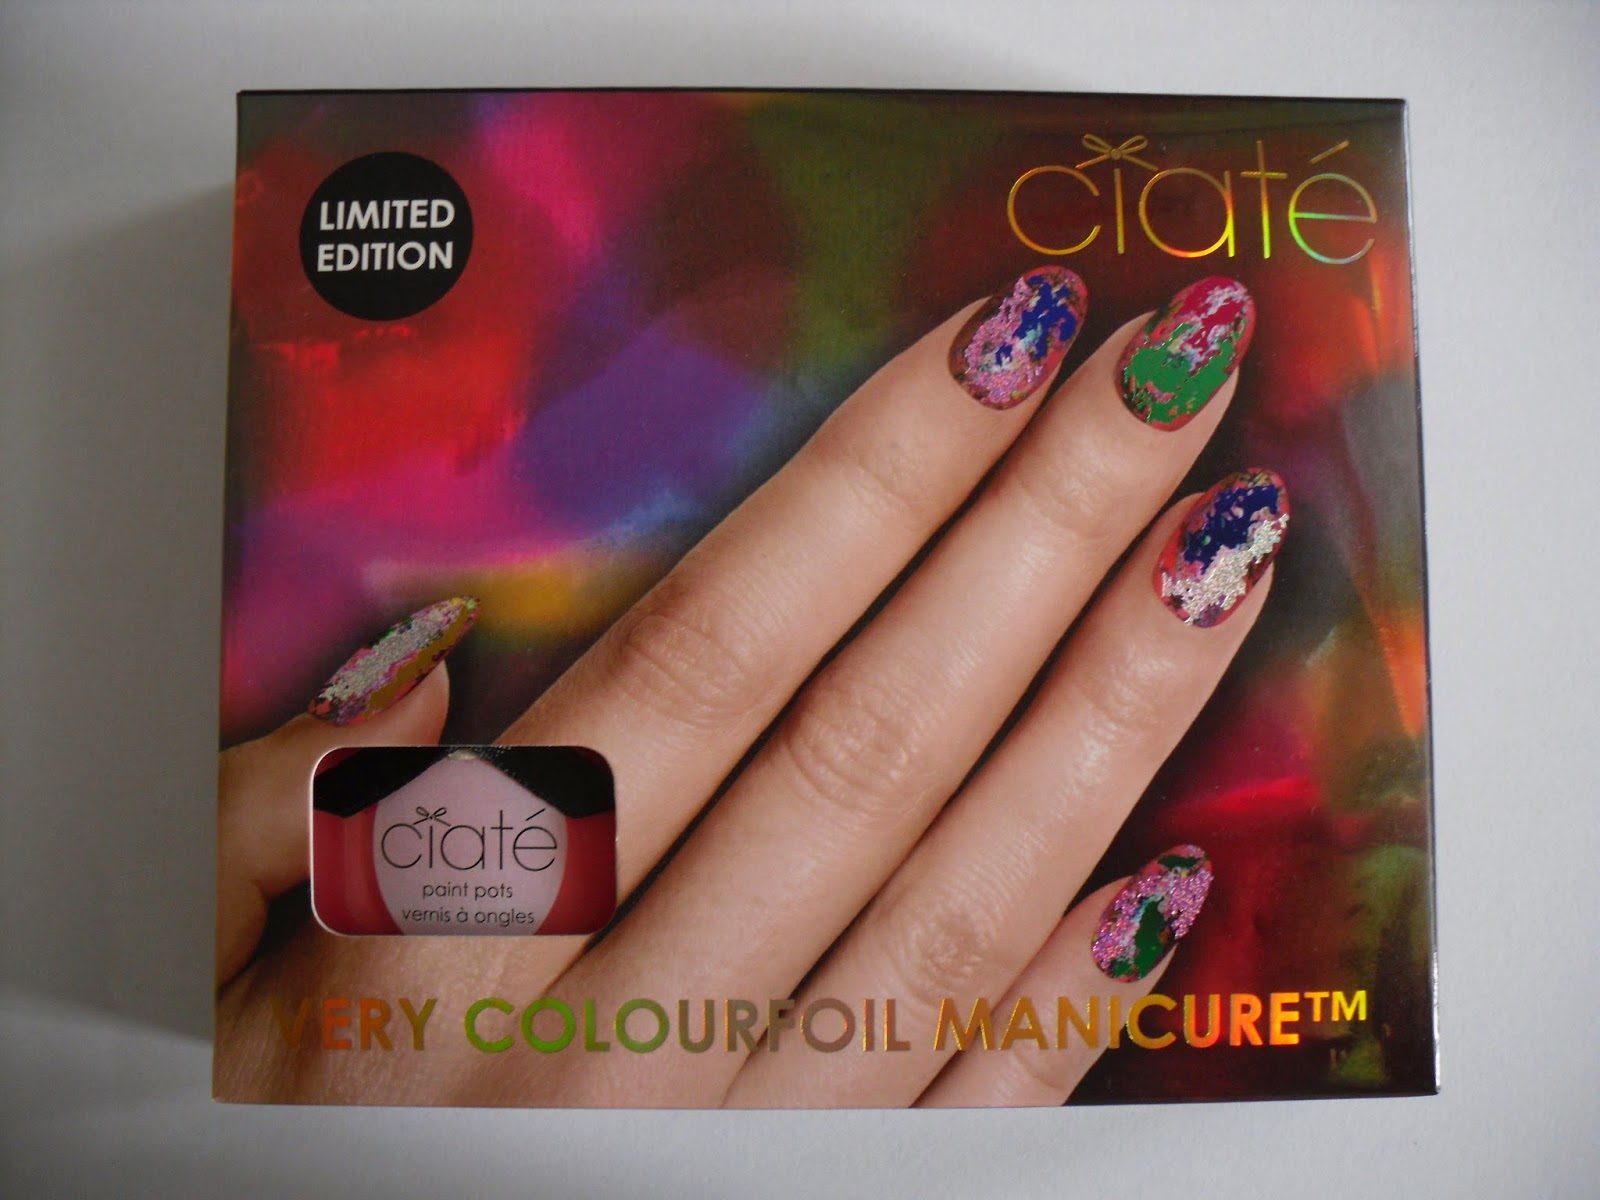 Ciate Very Colourfoil Manicure Carnival Couture